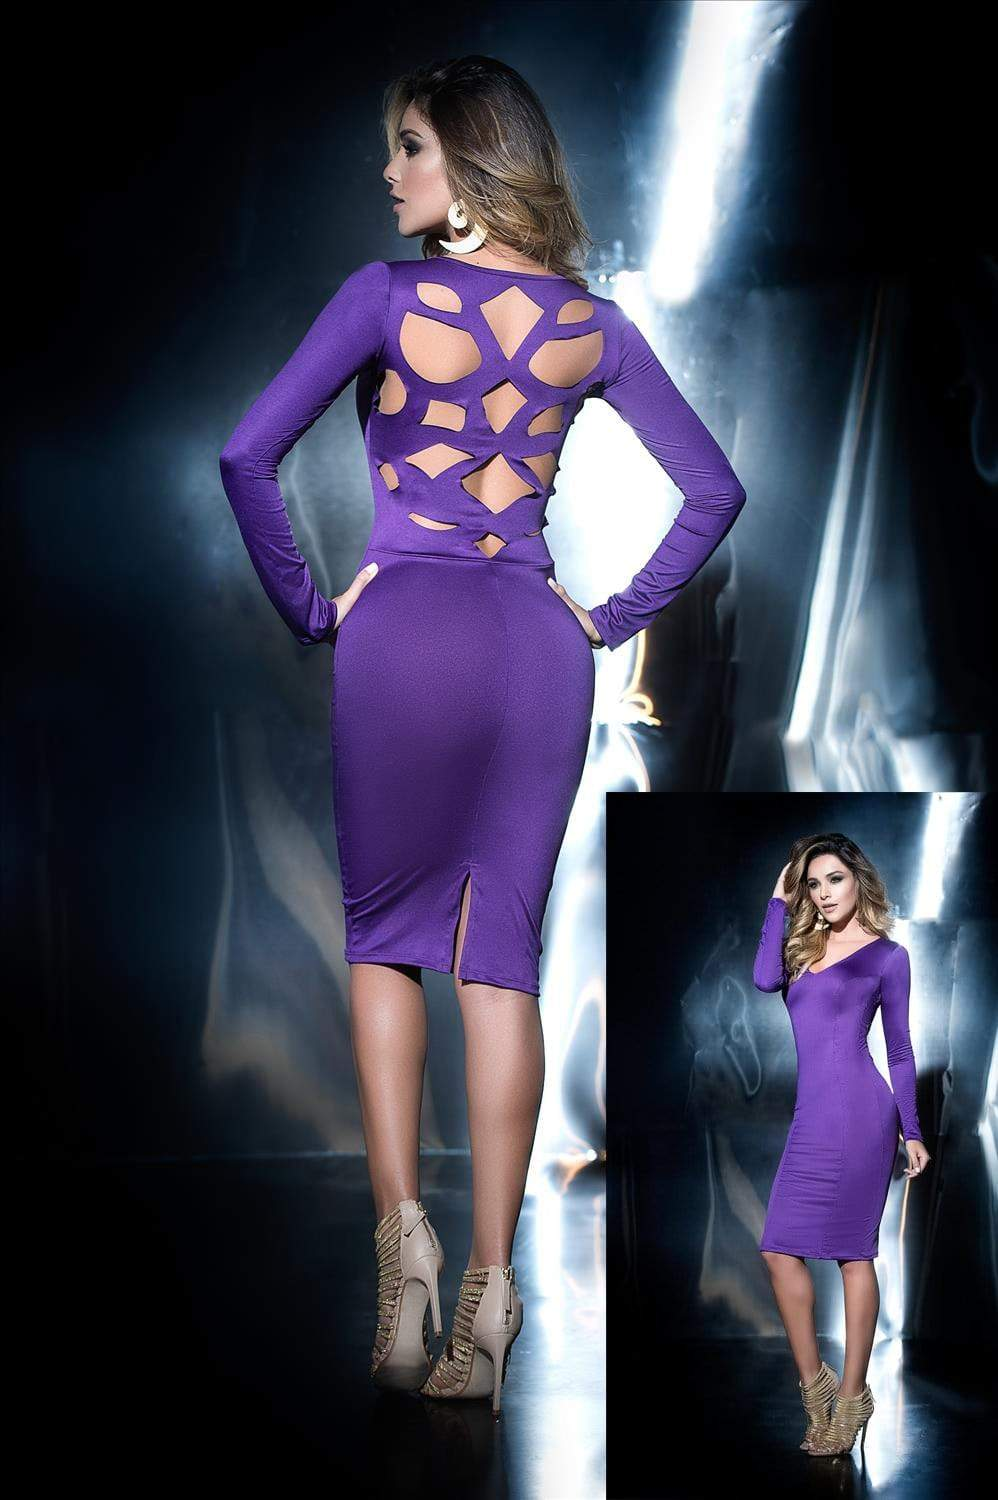 mapale Purple Dress w/ Cut Out Back Design Purple Dress w/ Cut Out Back Design Mapale 4446 | SHOP NOW |  Apparel & Accessories > Clothing > Dresses